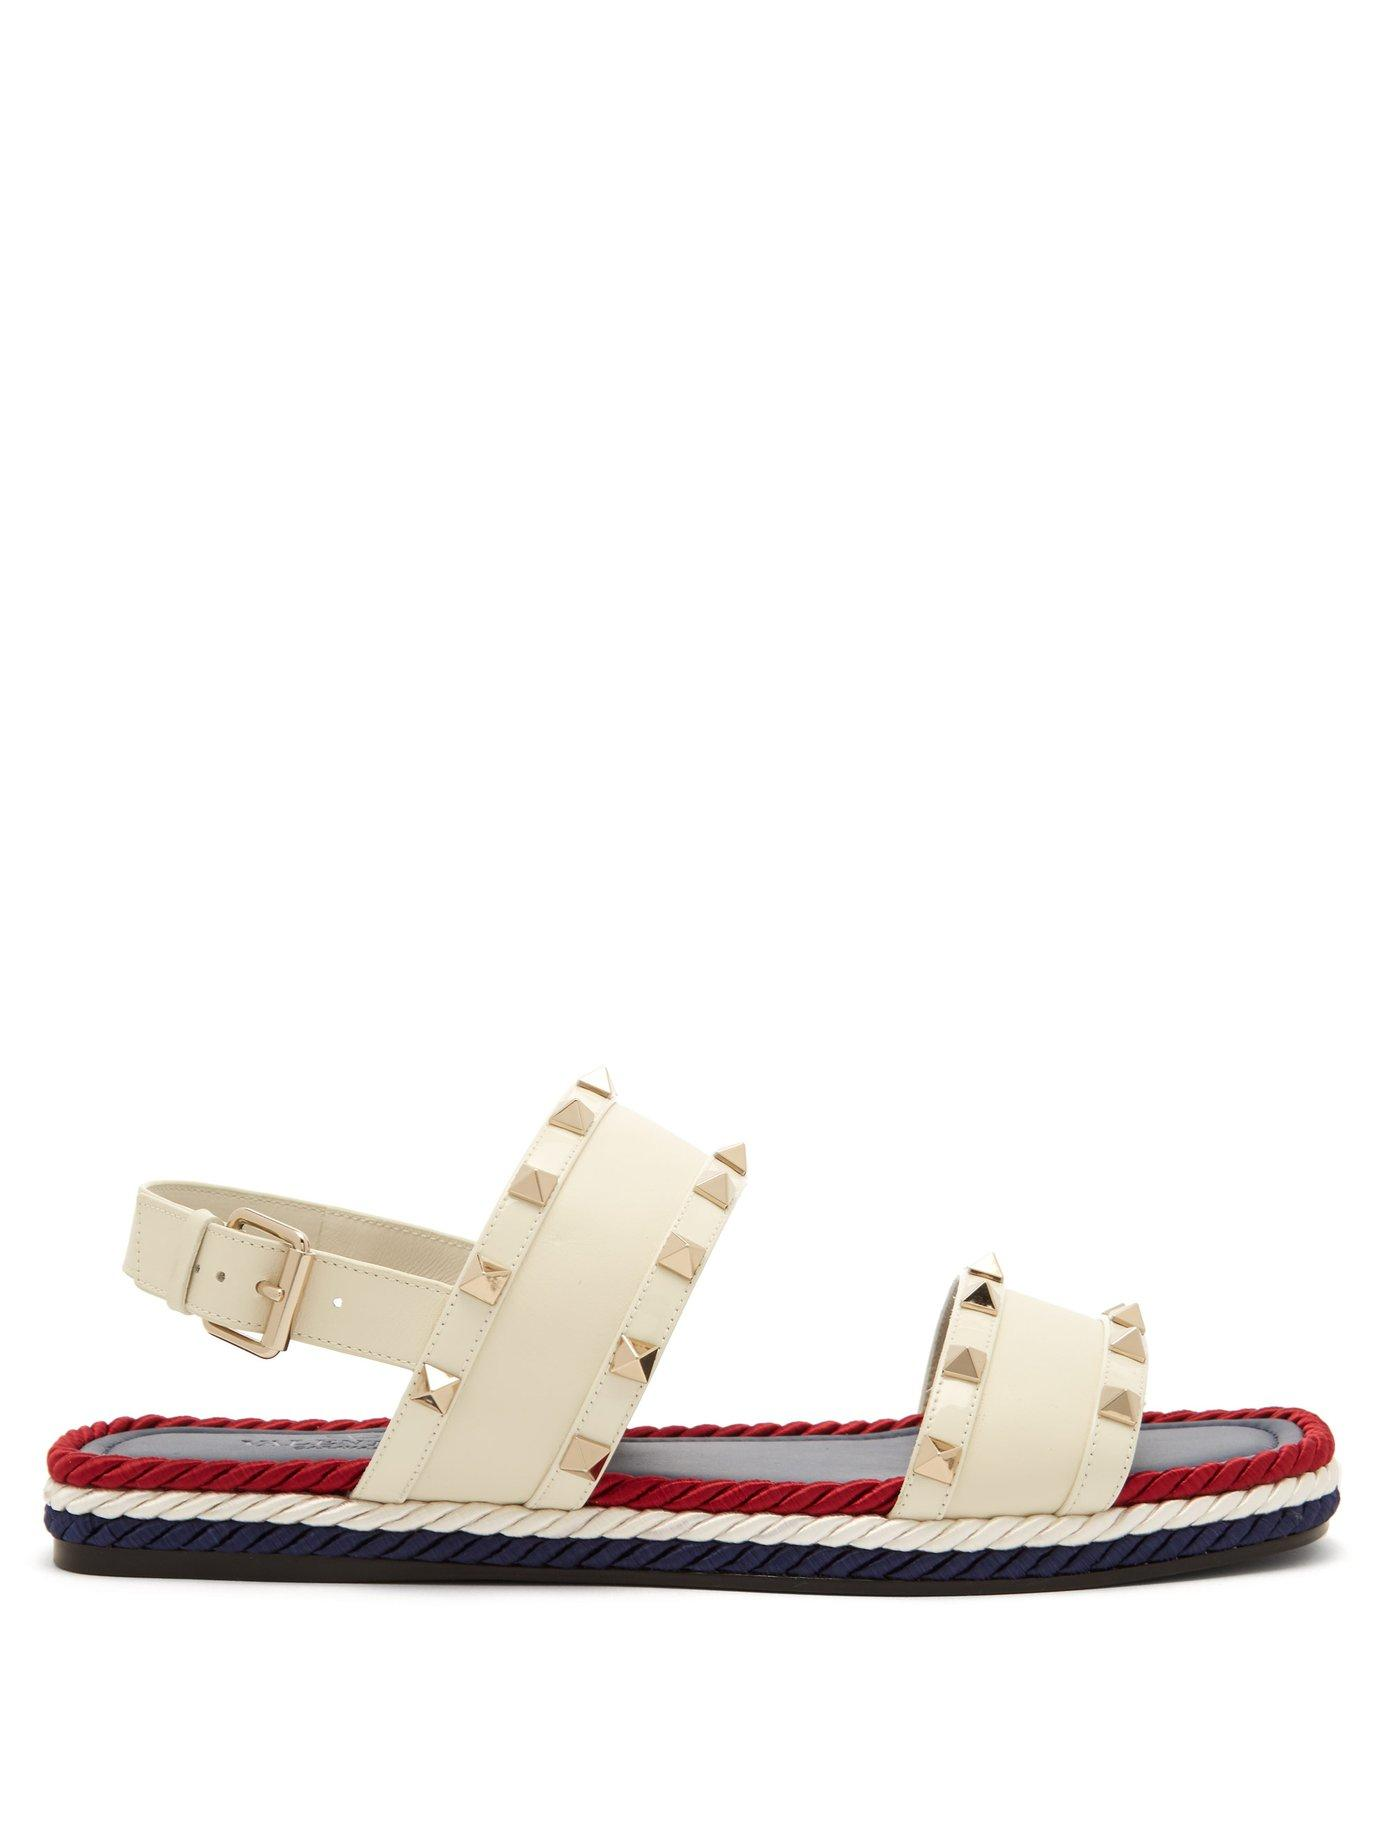 14a449ef13f Lyst - Valentino Torchon Rockstud Leather Sandals in White